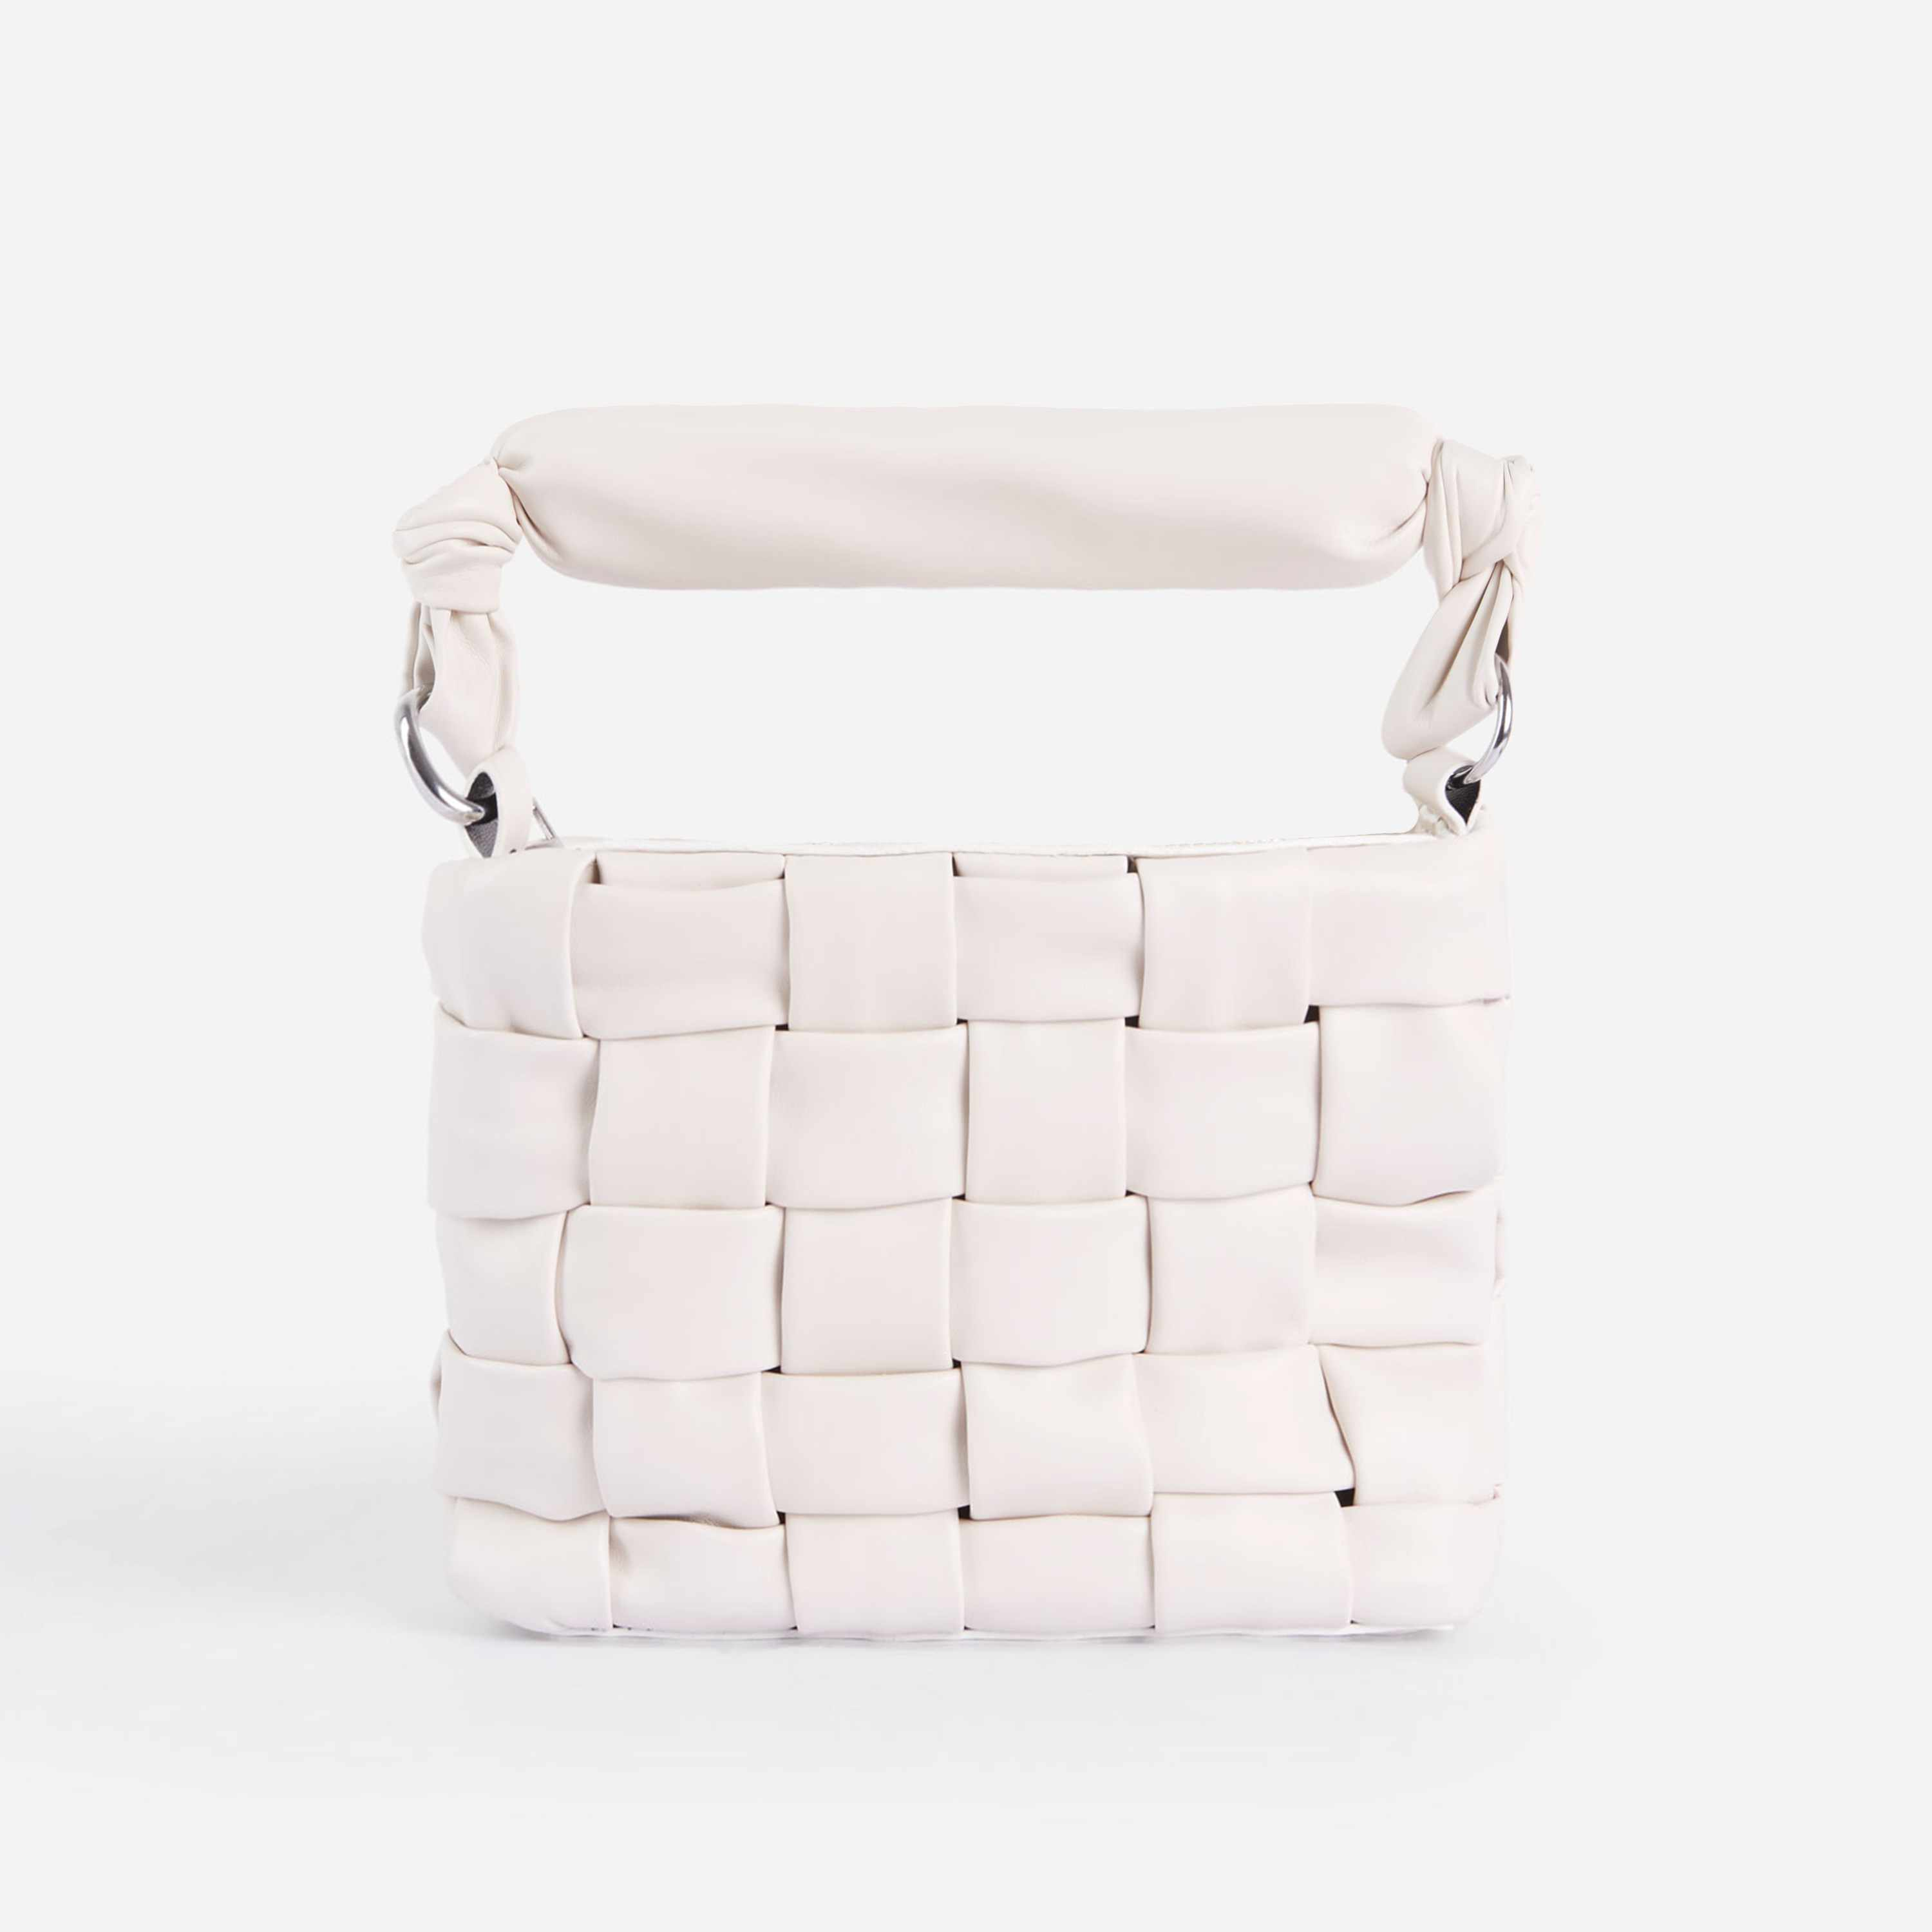 Carlie Padded Woven Cross Body Bag In White Faux Leather